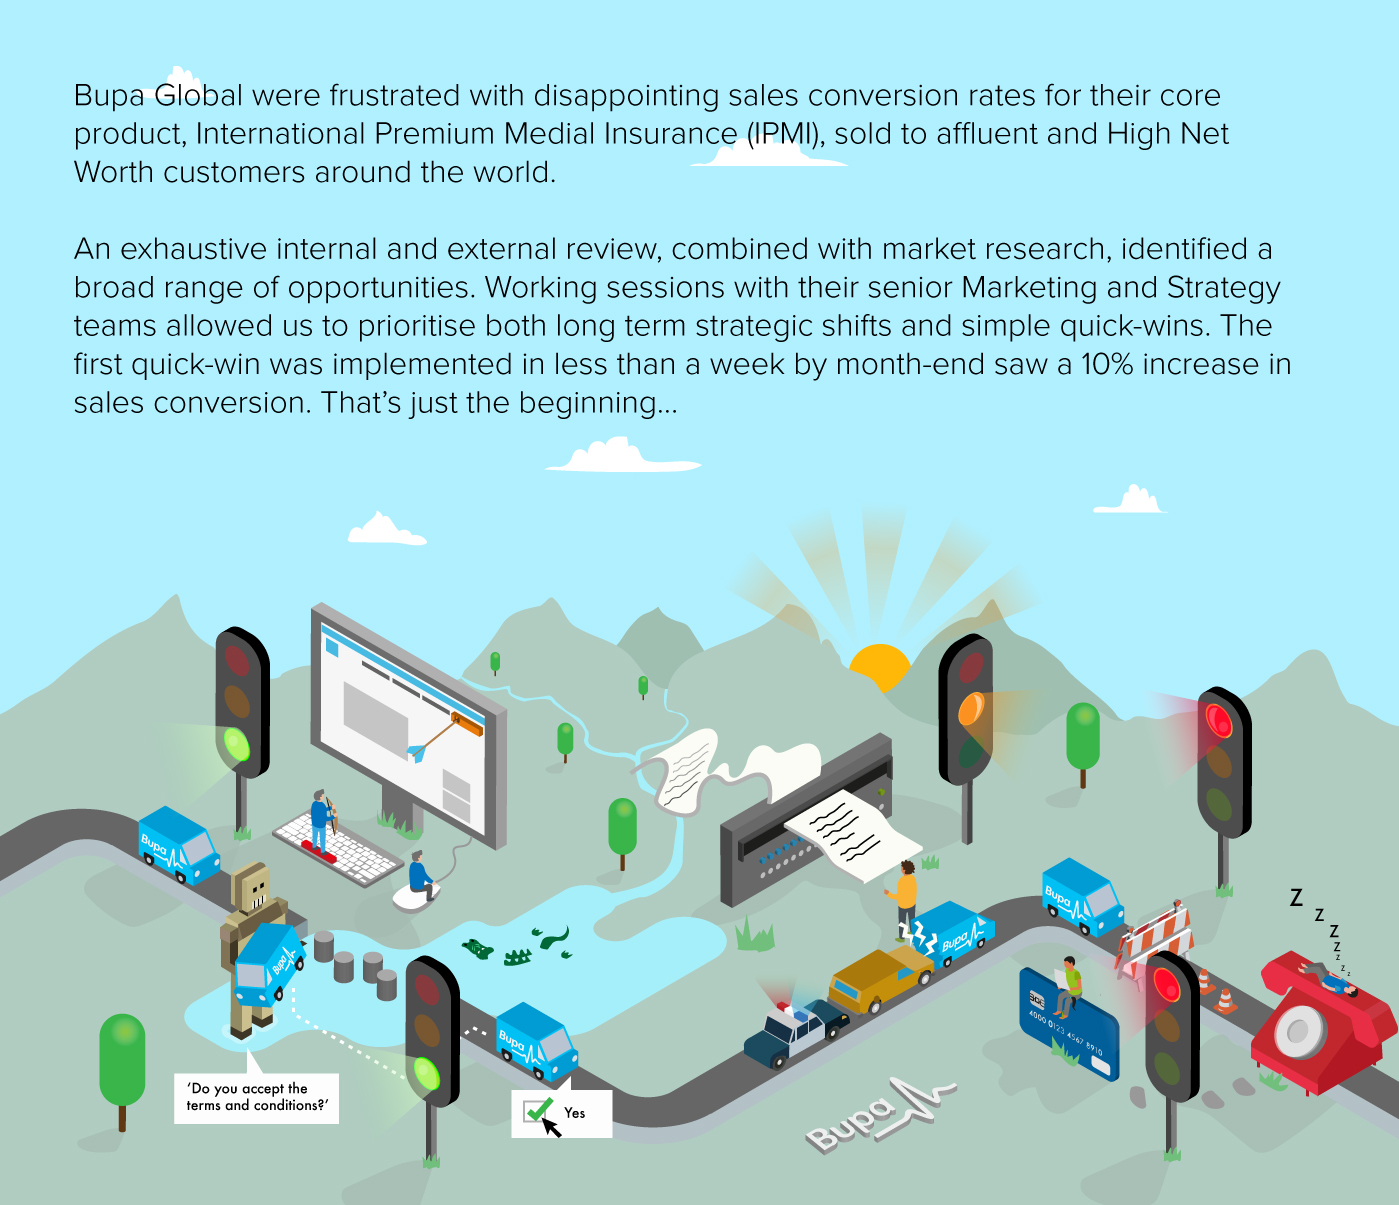 Bupa-infographic-website-version.png